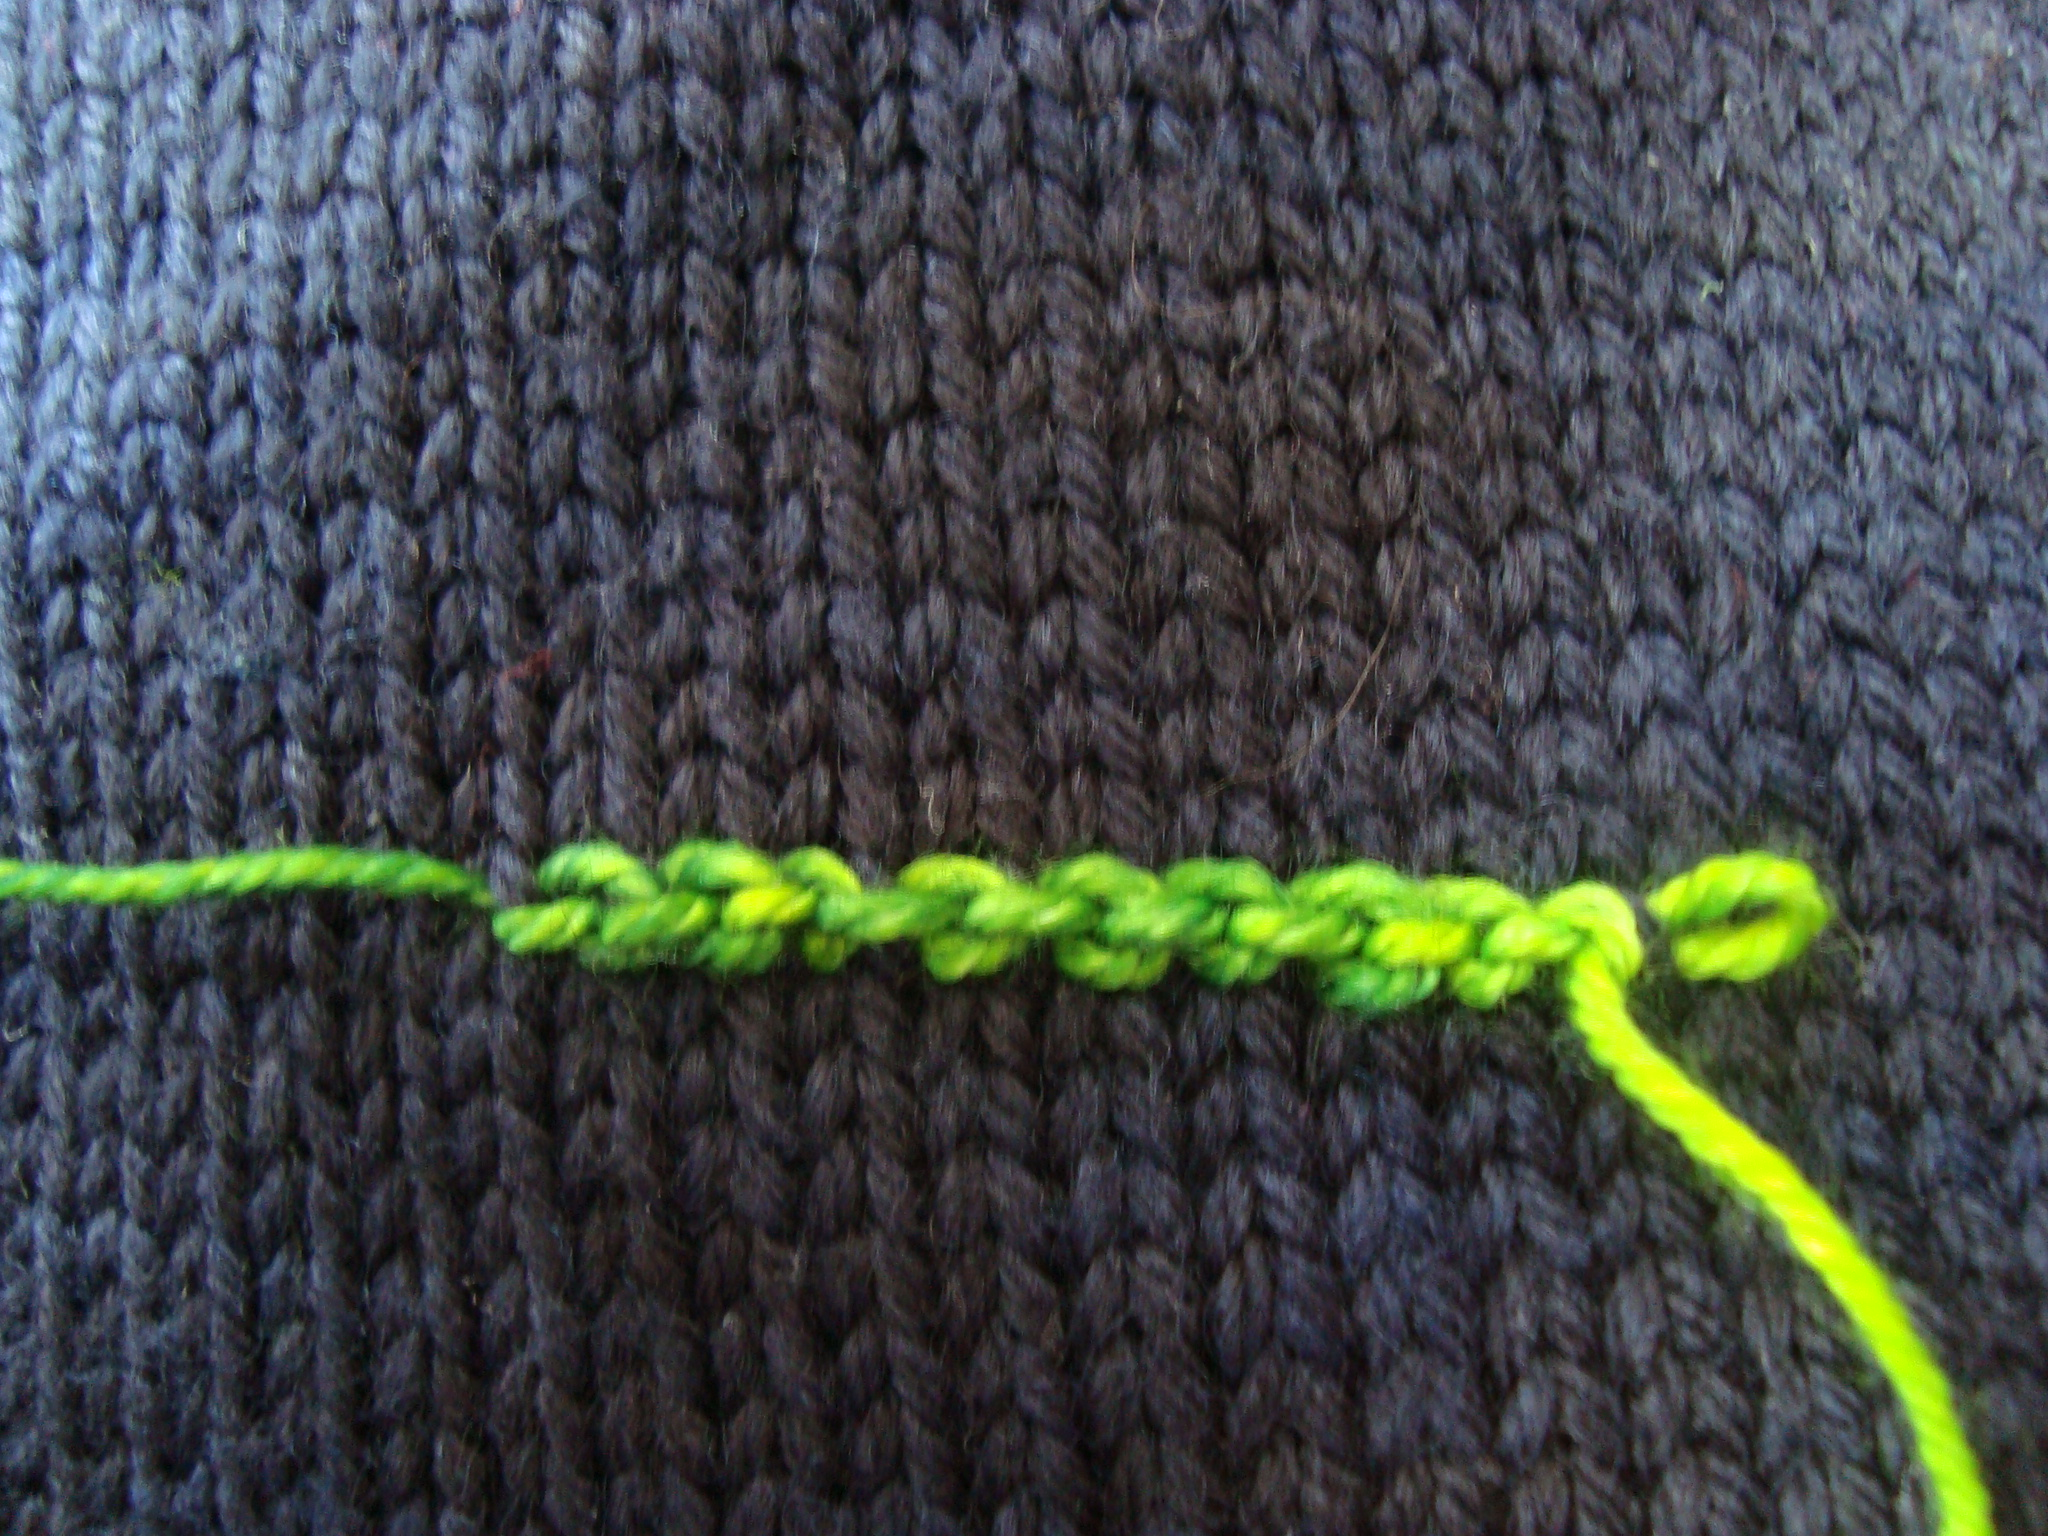 """The Only Problem Was That I Had To Carry The Yarn In Front To Work The  Crochet, So I Ended Up With The Wrong €�side"""" Of The Chain Stitch Pointing  Forward"""